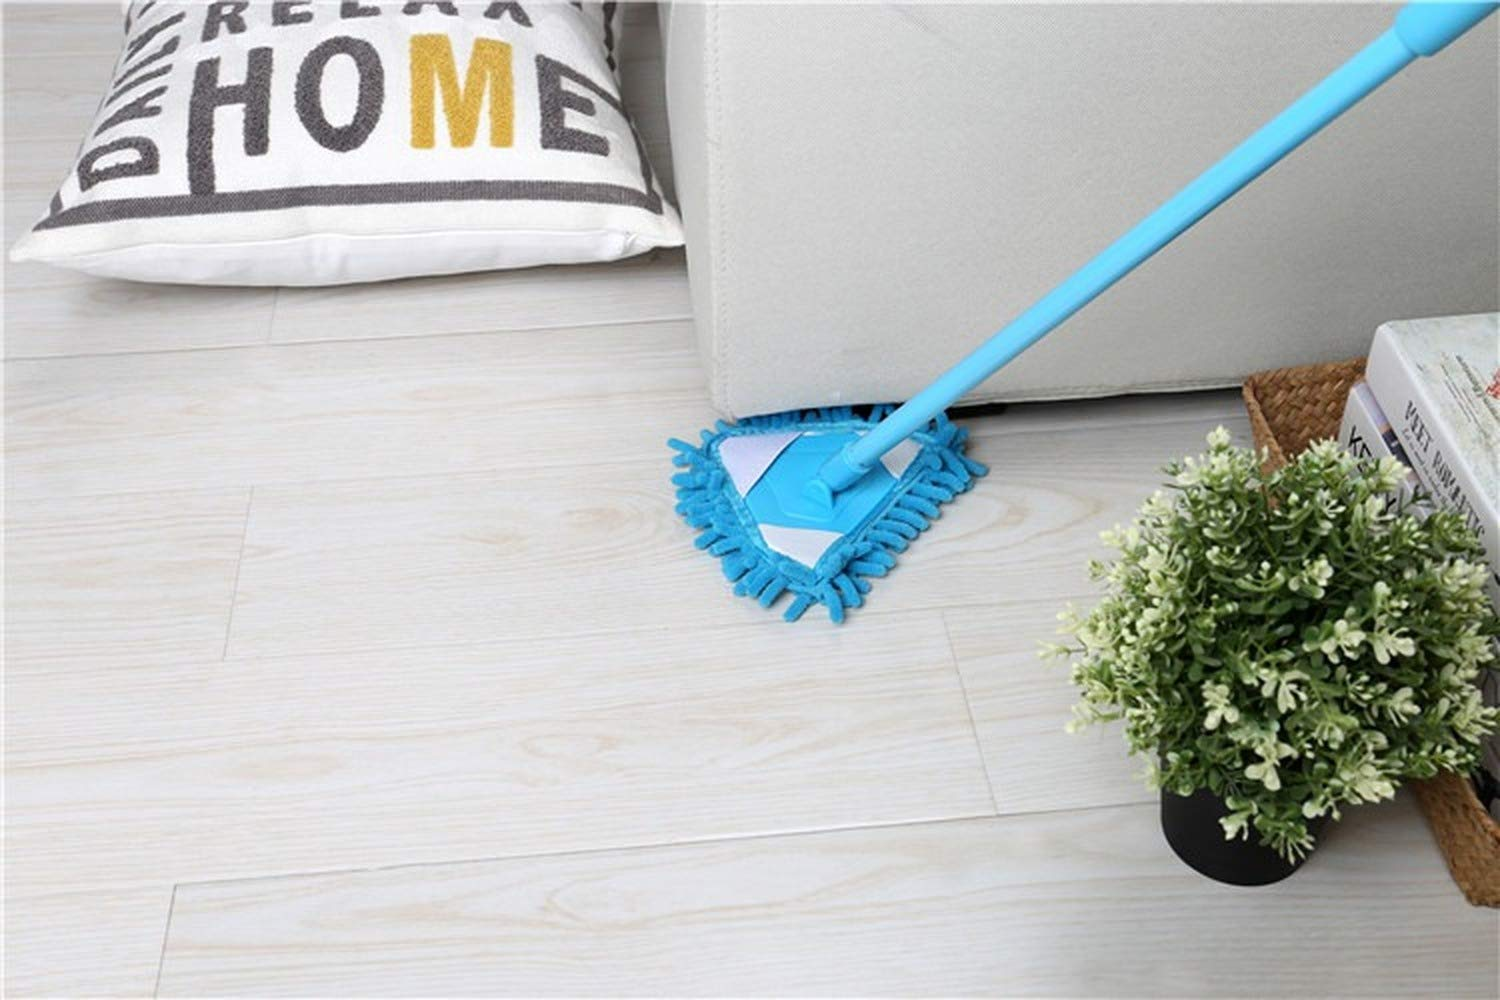 DAIDAIGZ Mini Mop Bathroom Floor Cleaning Tool Flat Lazy Mop Wall Household Cleaning Brush Chenille Mop Washing Mop Dust Brush Cleaning